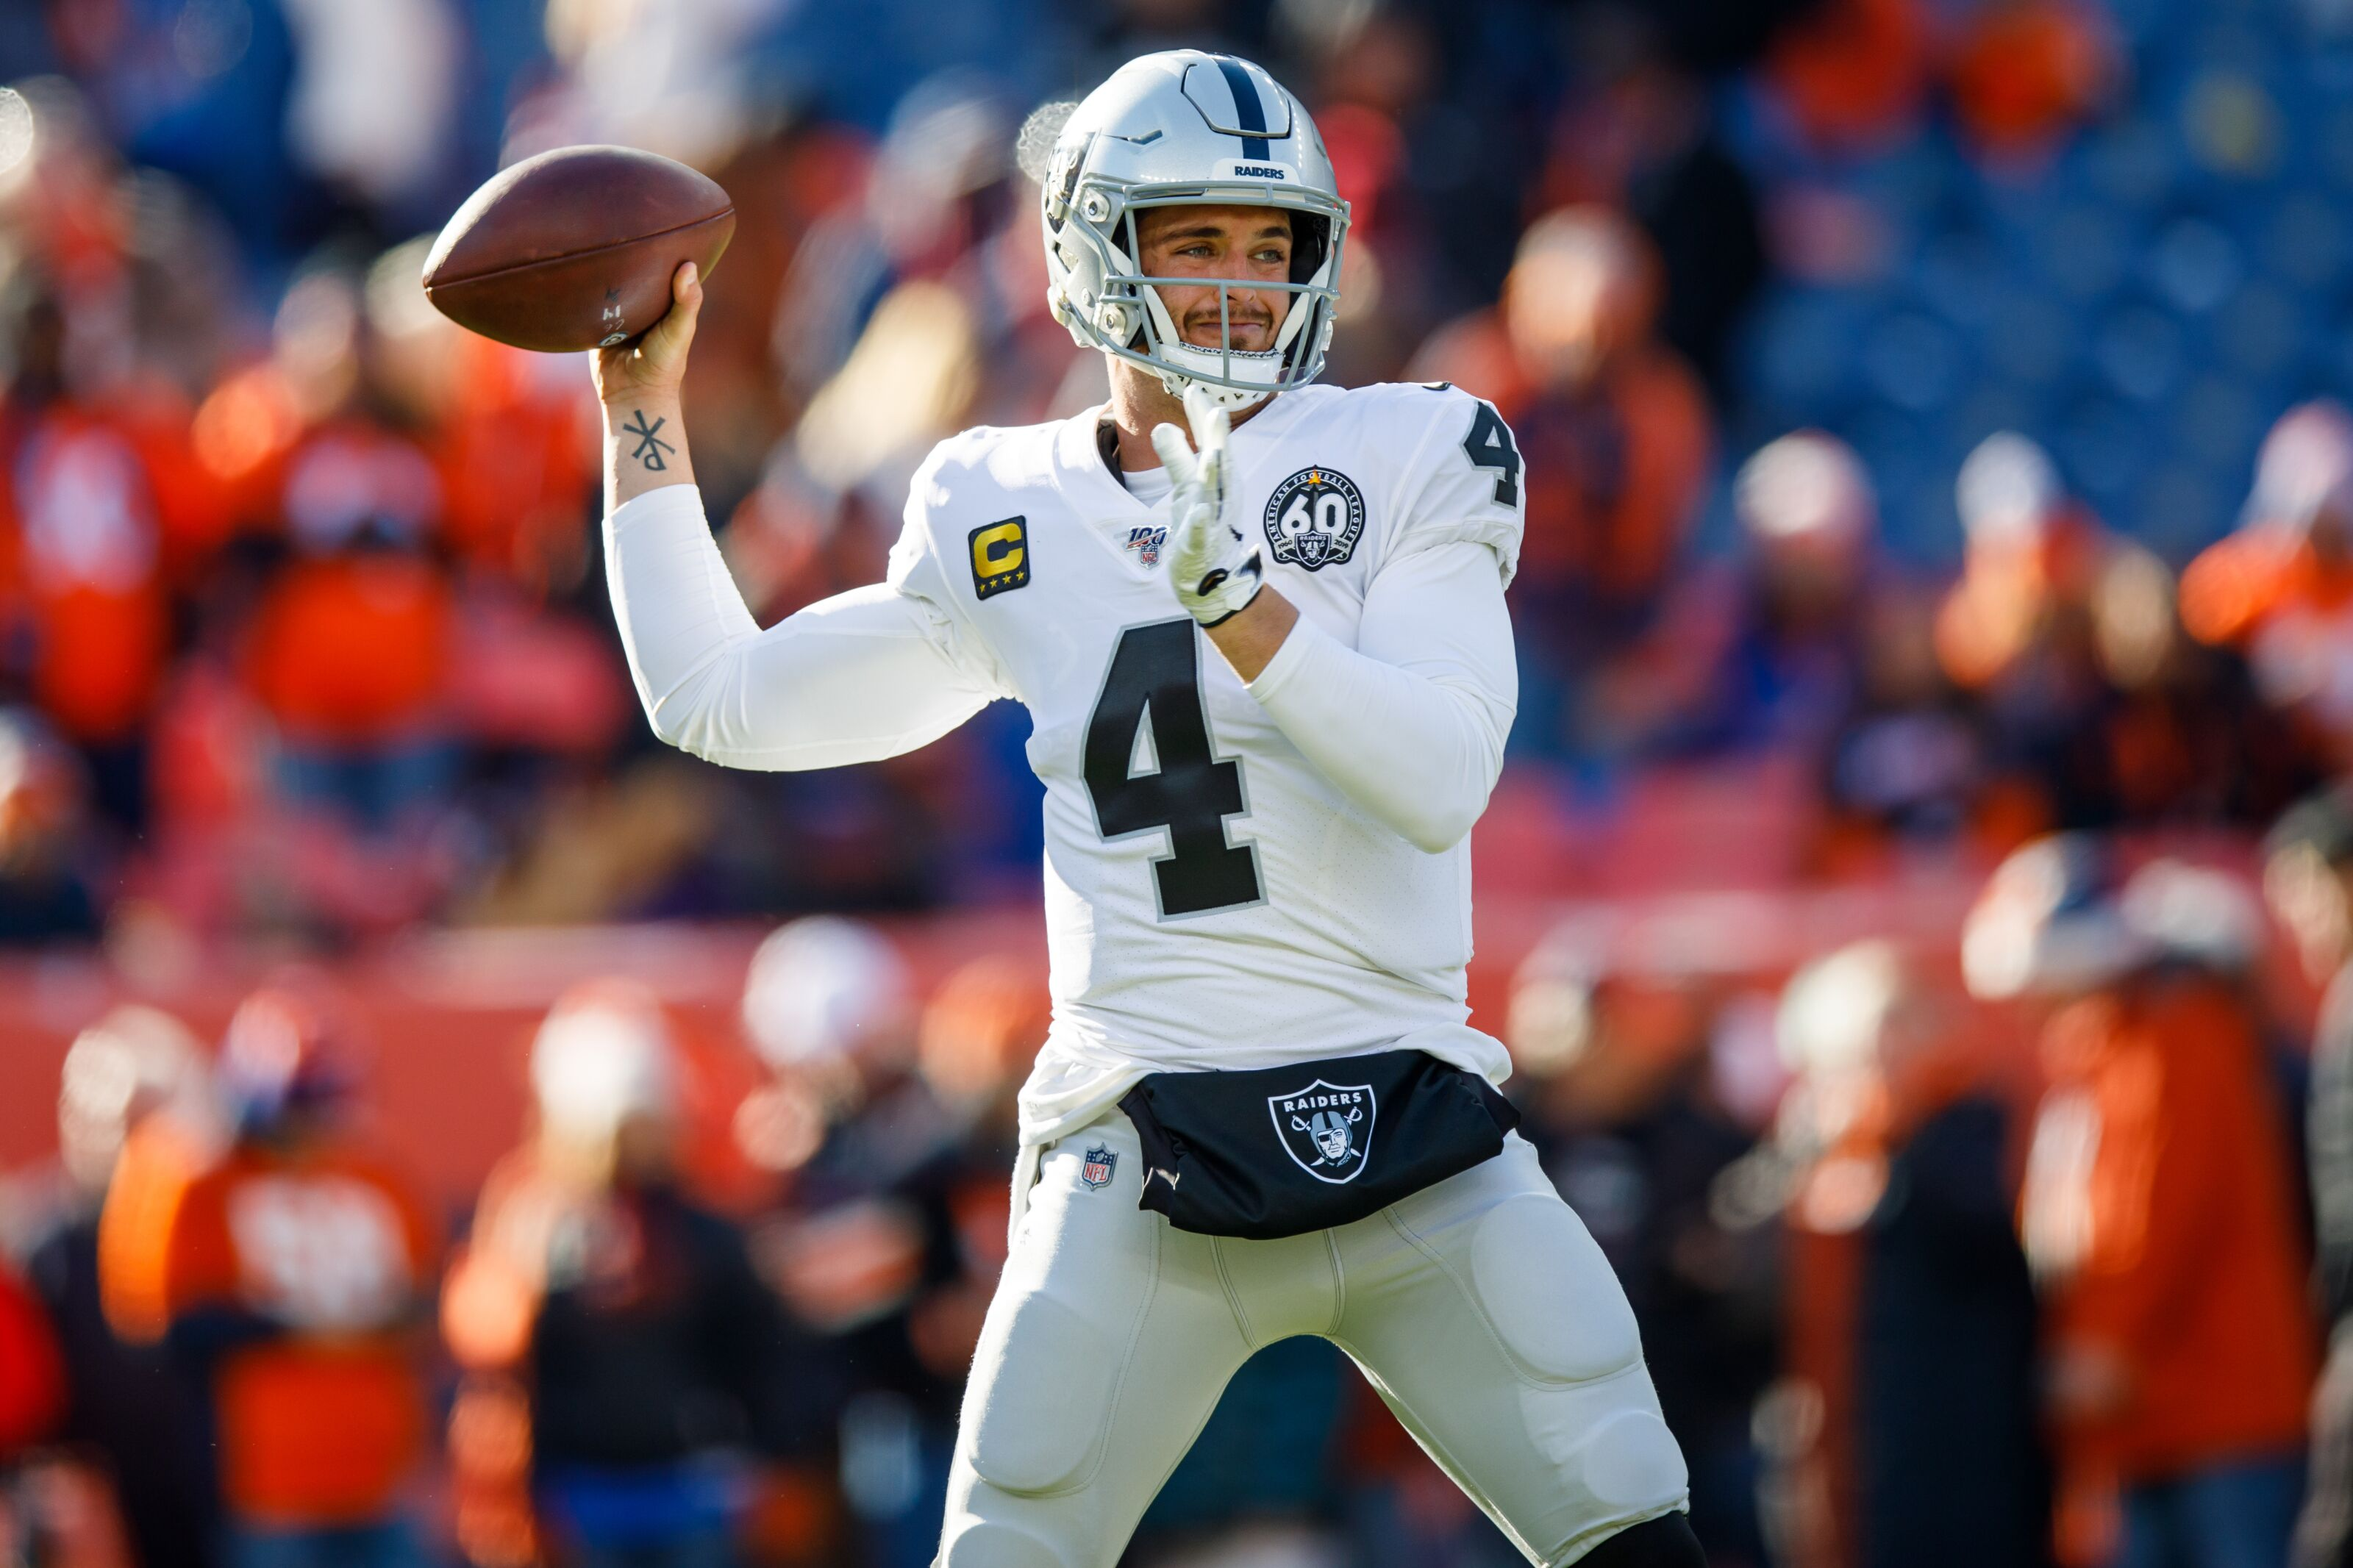 It's time for the Raiders to move on from Derek Carr